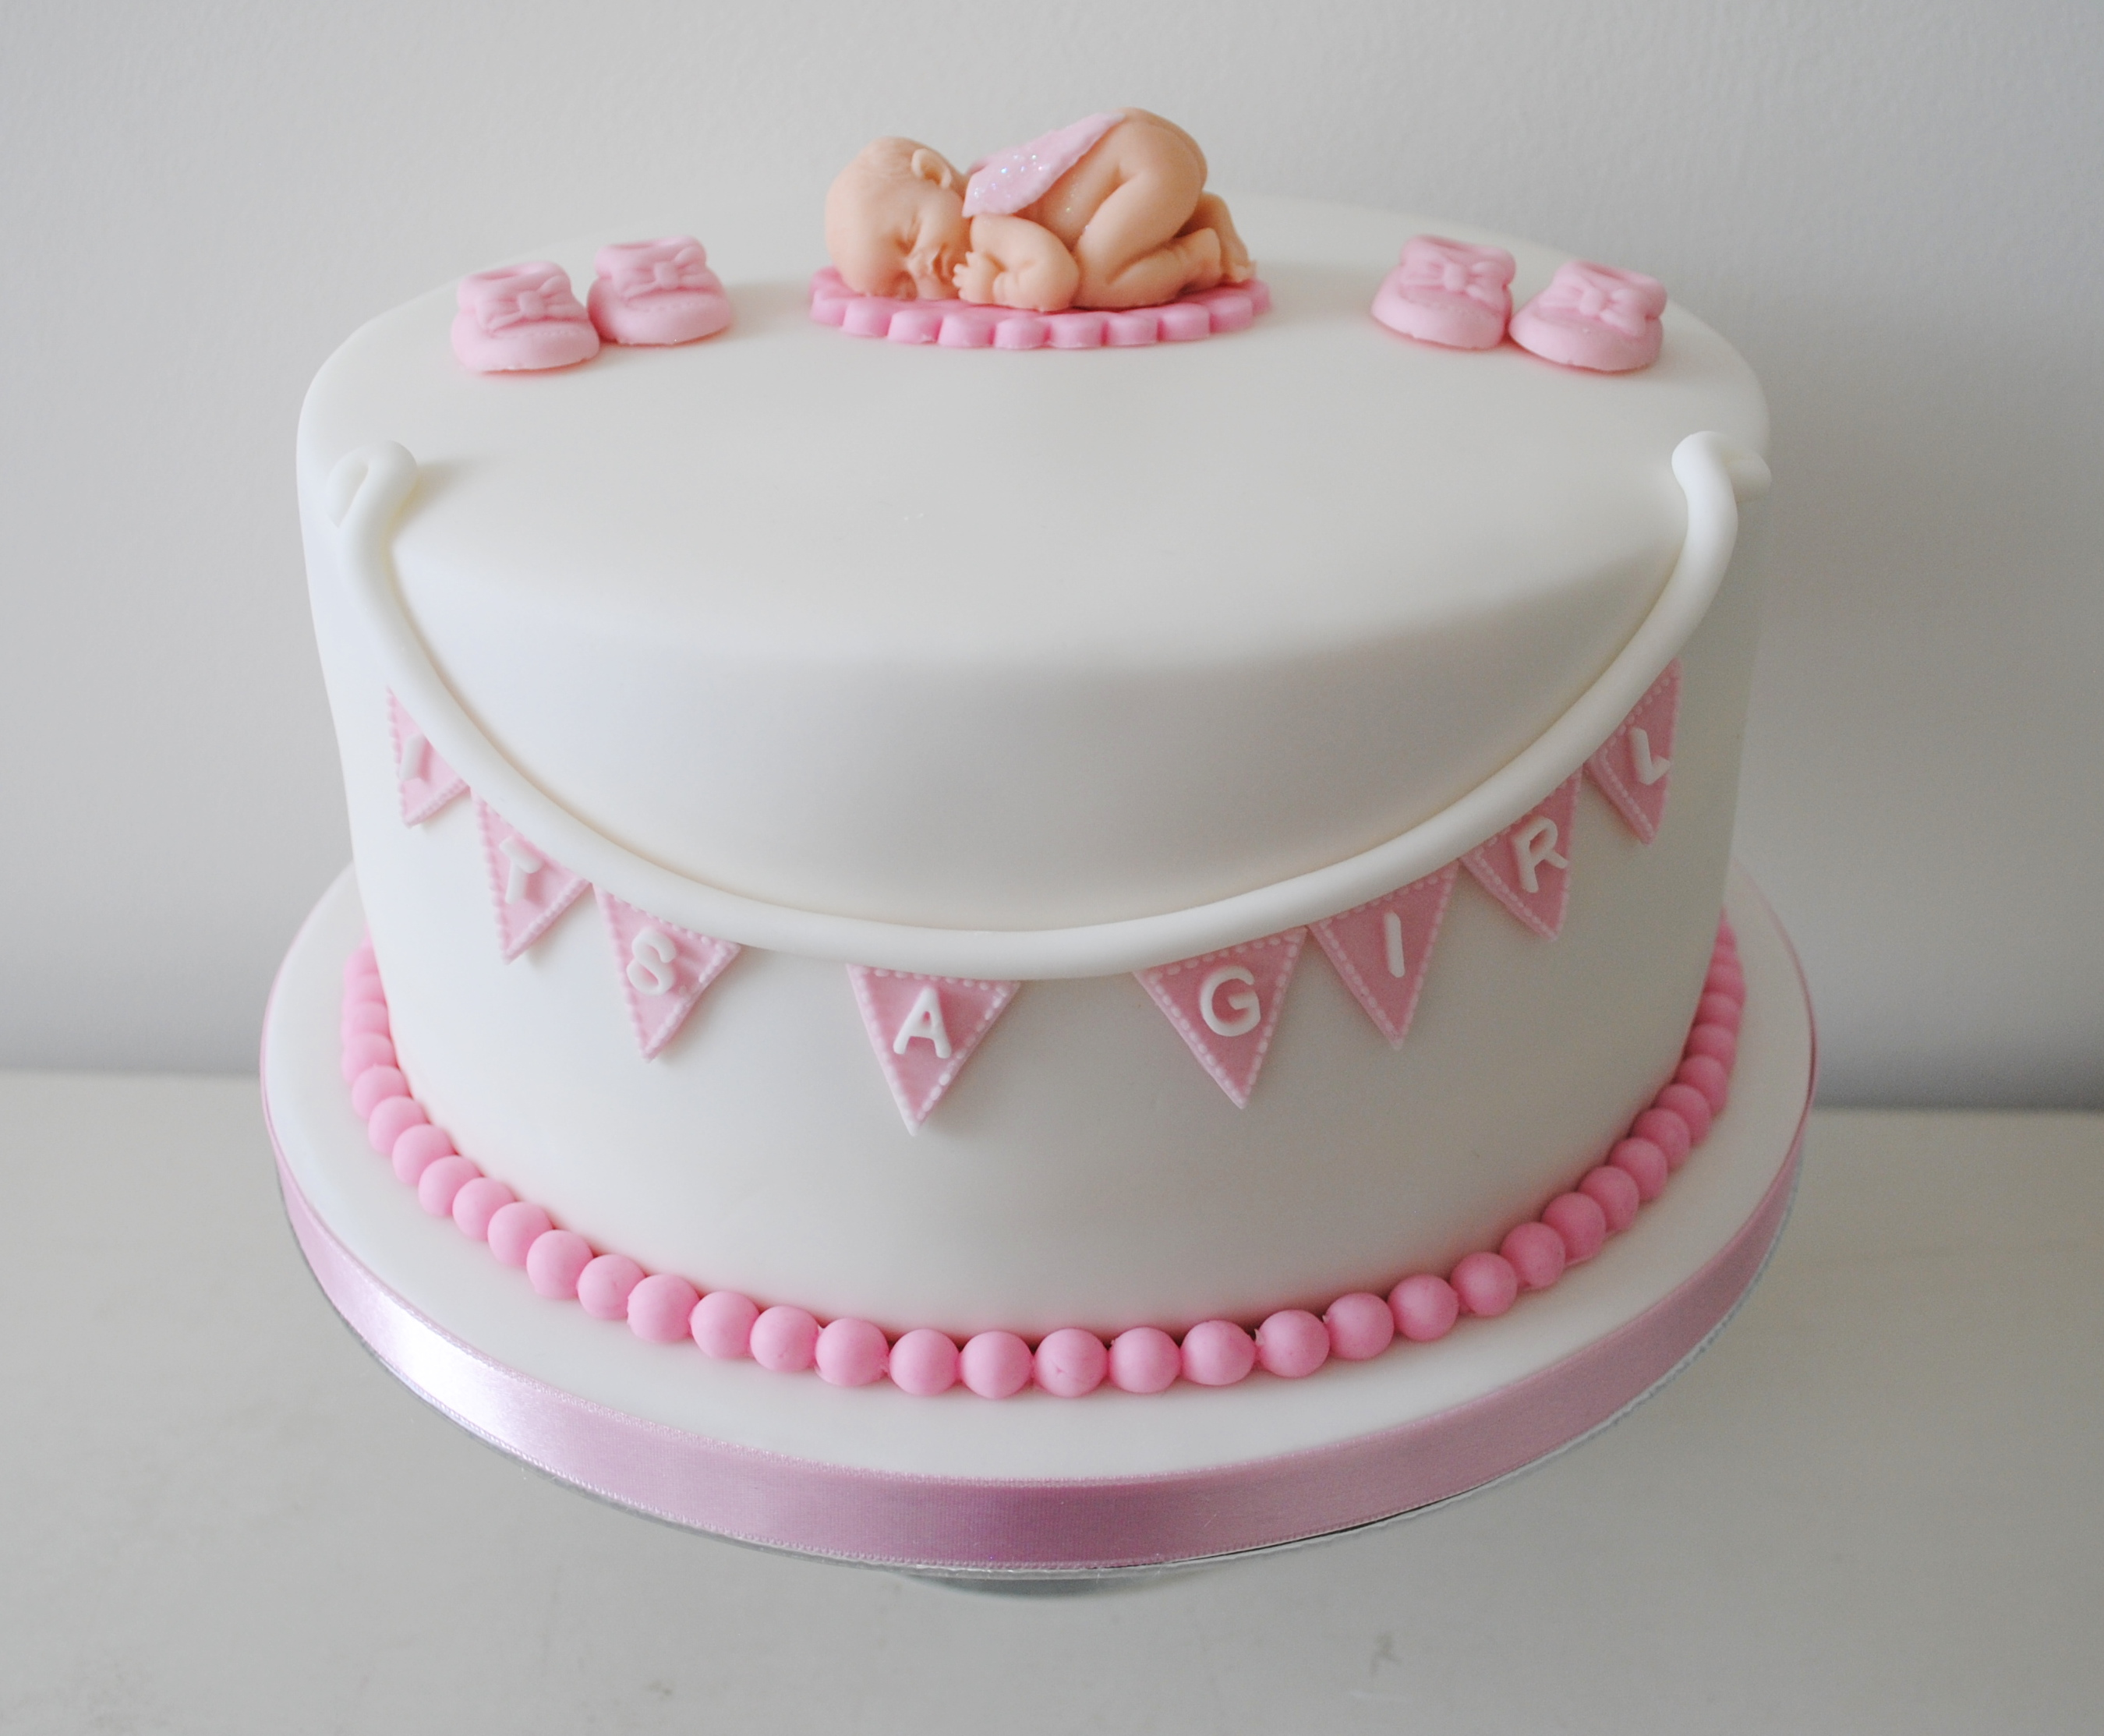 Cake Decorating Baby Shower Girl : Miss Cupcakes  Blog Archive   Its a girl Baby shower cake